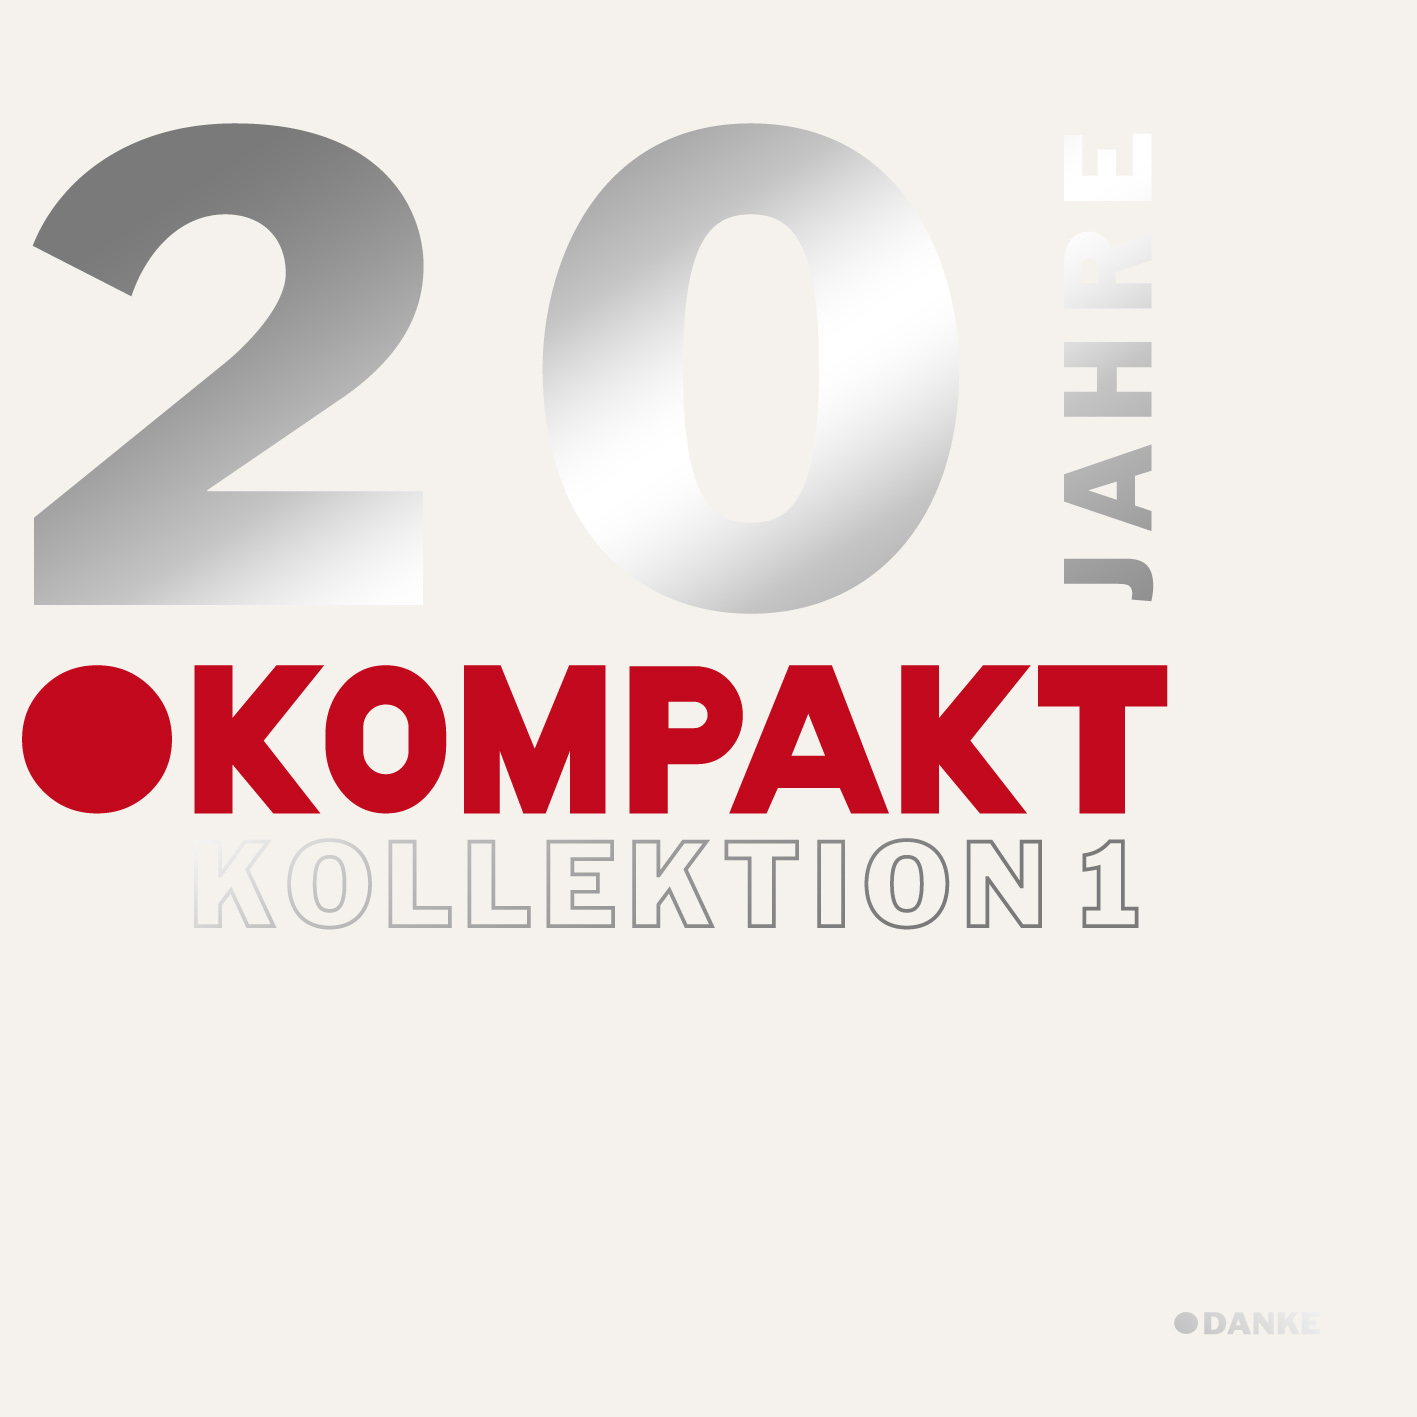 20 years of Kompakt - Compilation